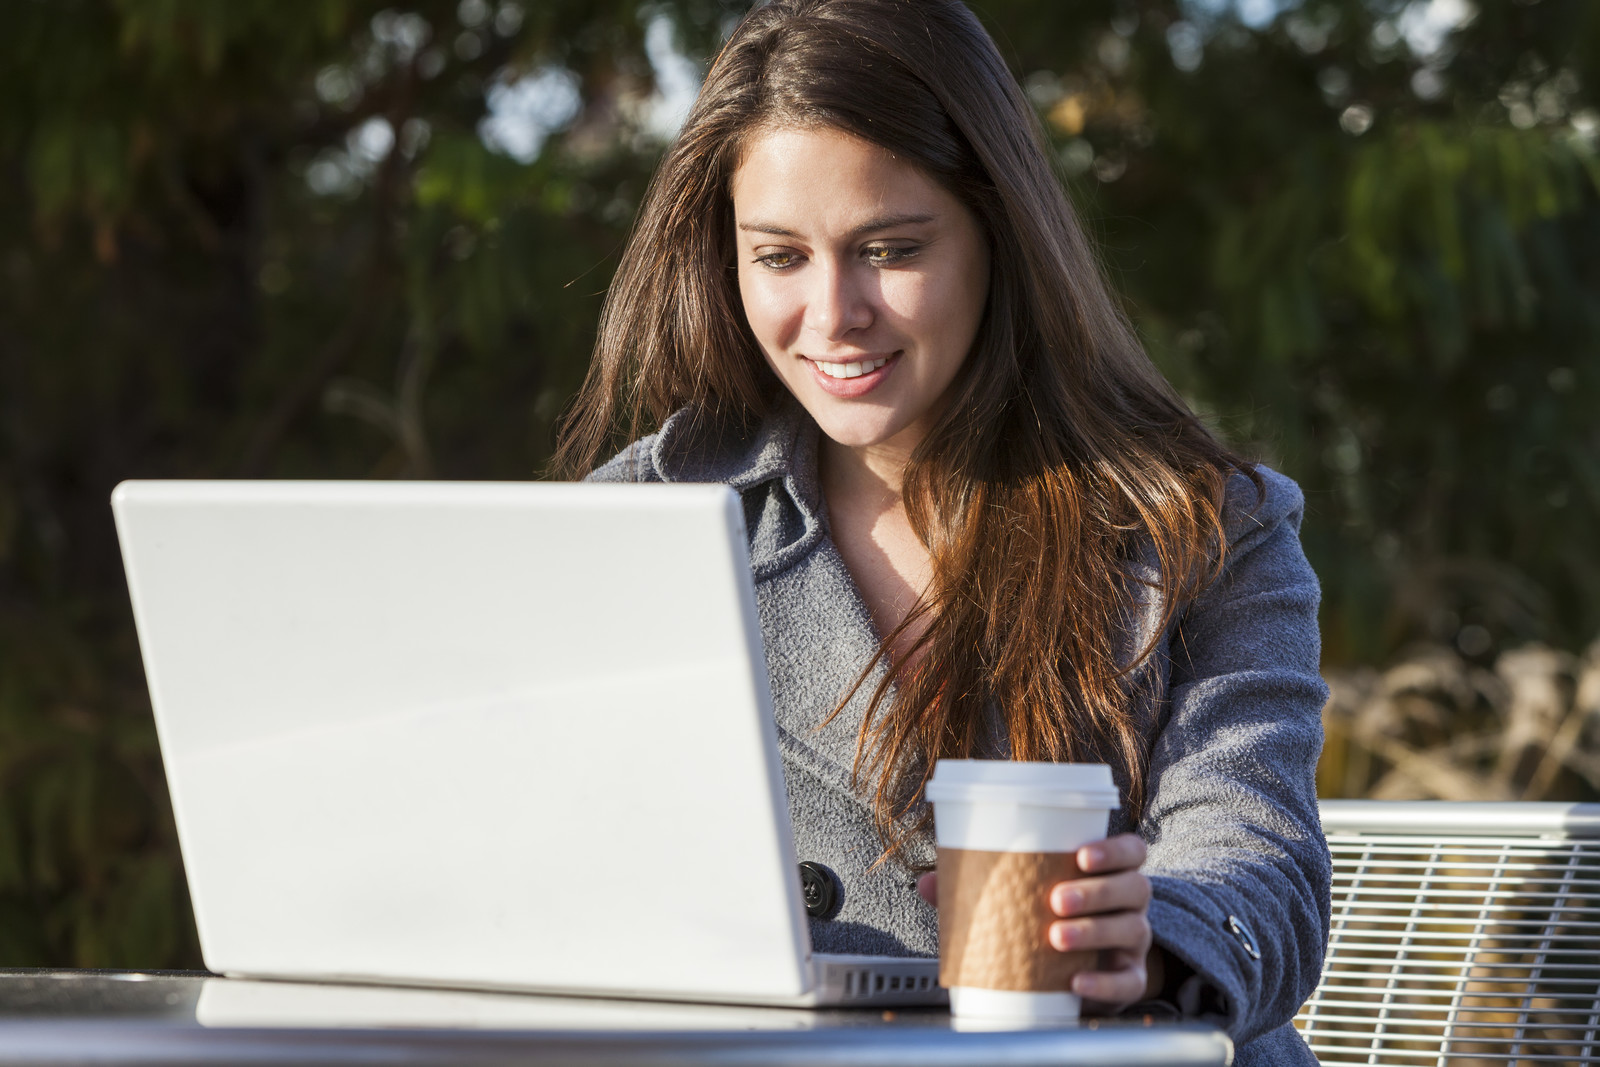 young woman building an afffiliate website at an outdoor cafe